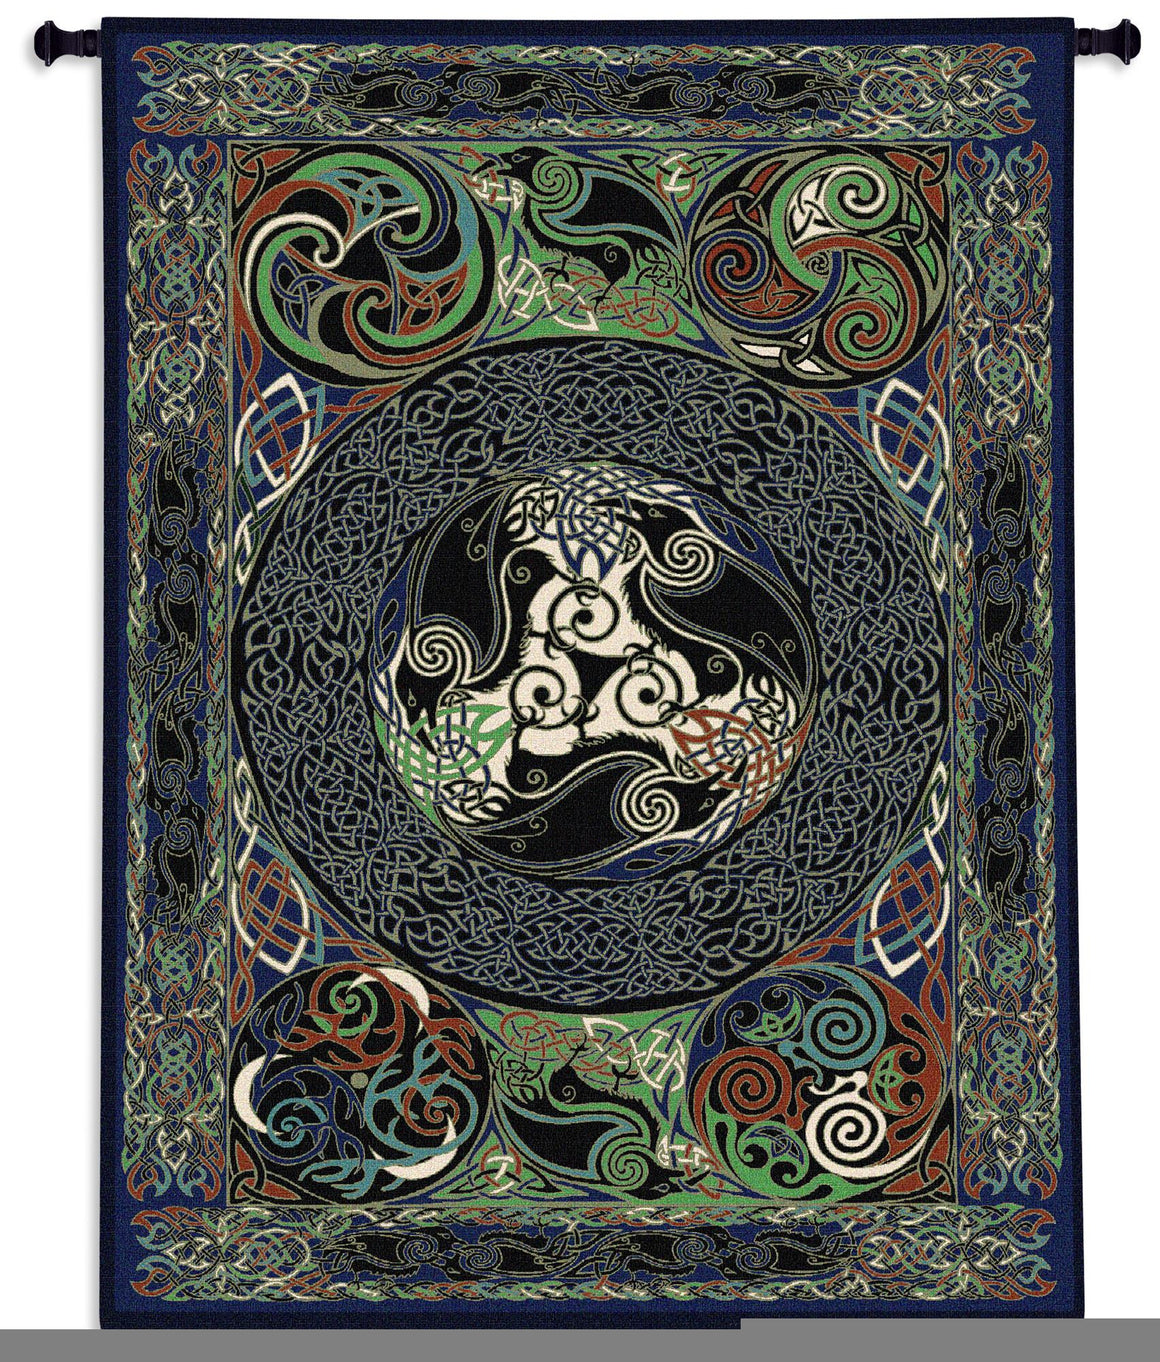 Raven Panel Tree of Life Tapestries